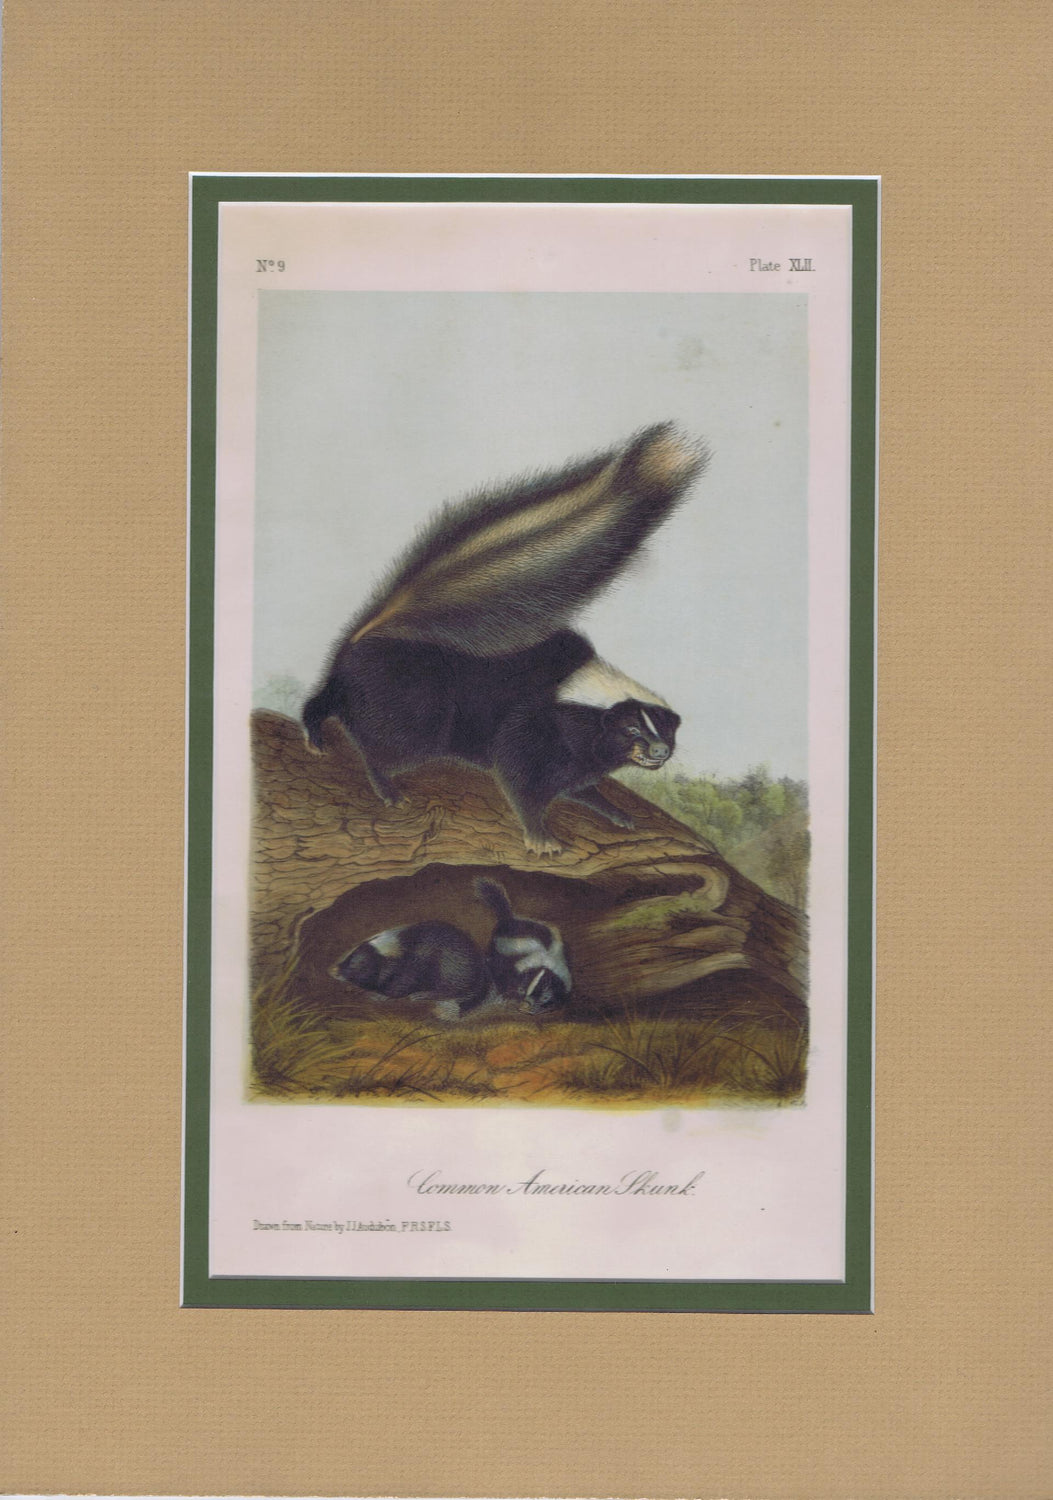 Original Audubon Octavo Quadruped Matted, Common American Skunk, plate 42